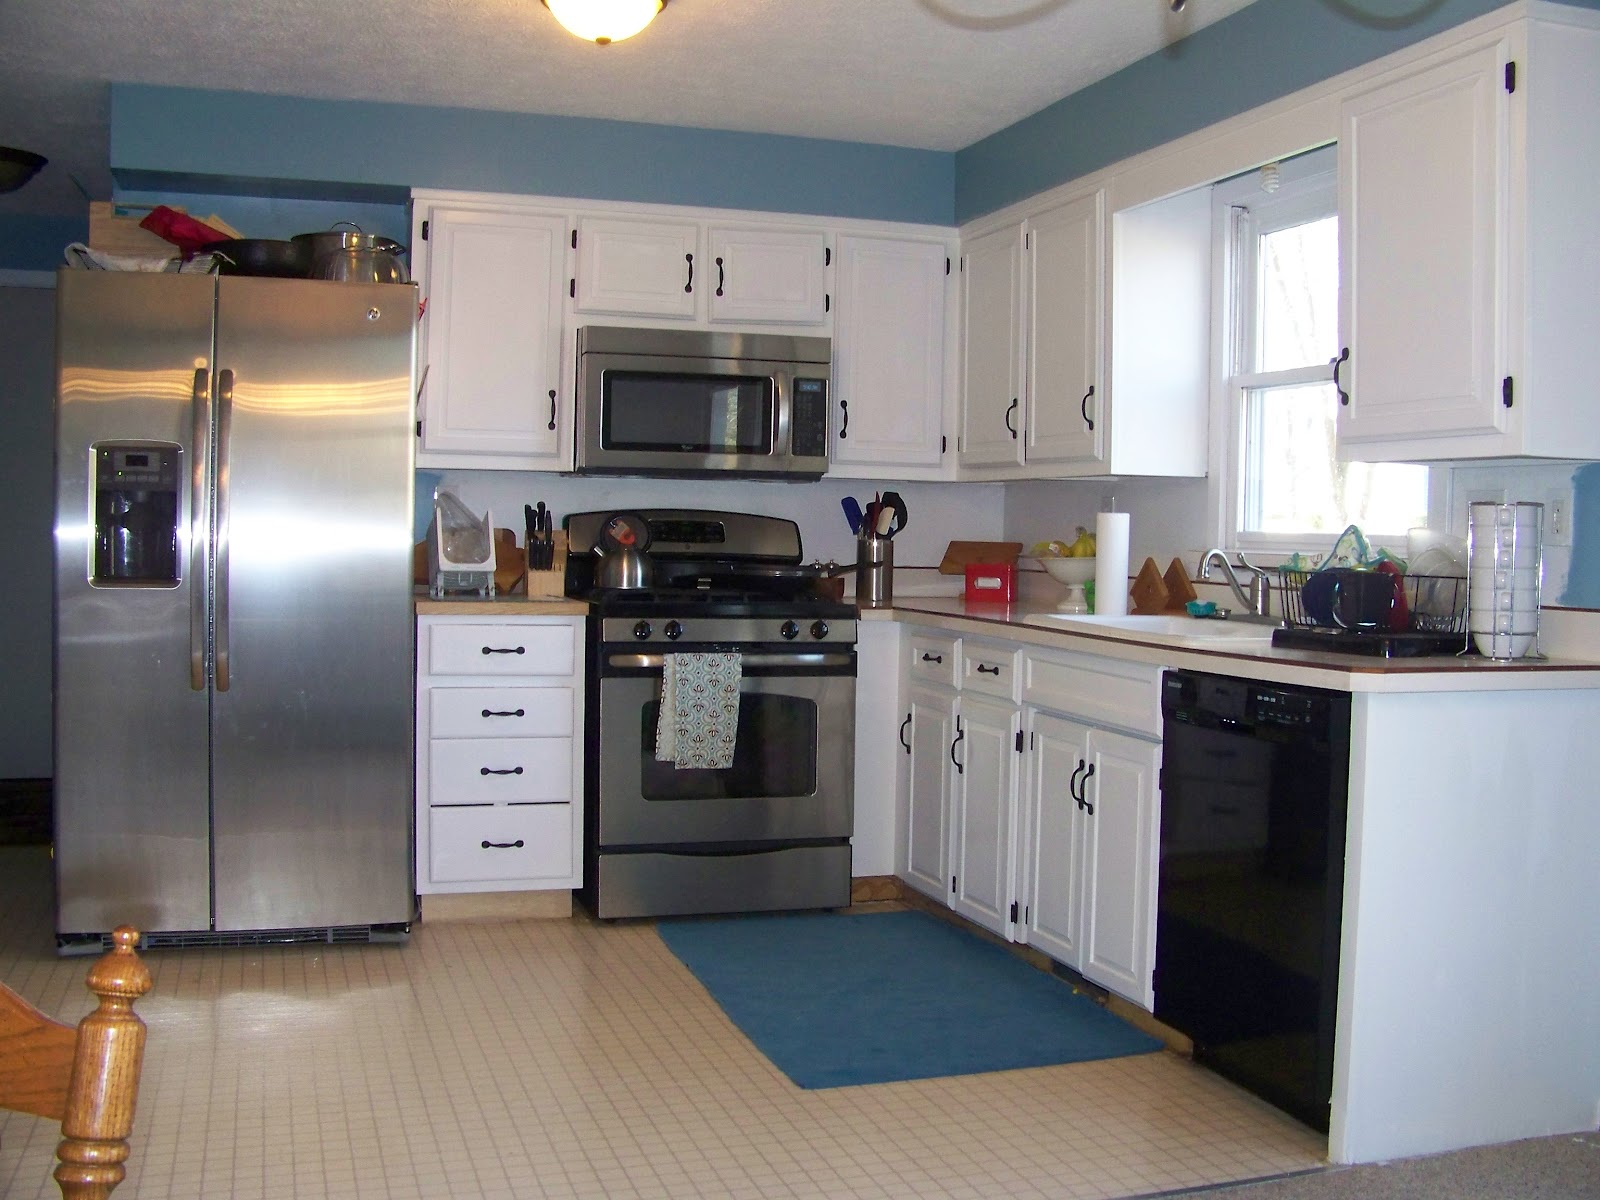 Rustoleum Kitchen Cabinet Kit Reviews Free Standing Pantry Ideas Transformations Light Www